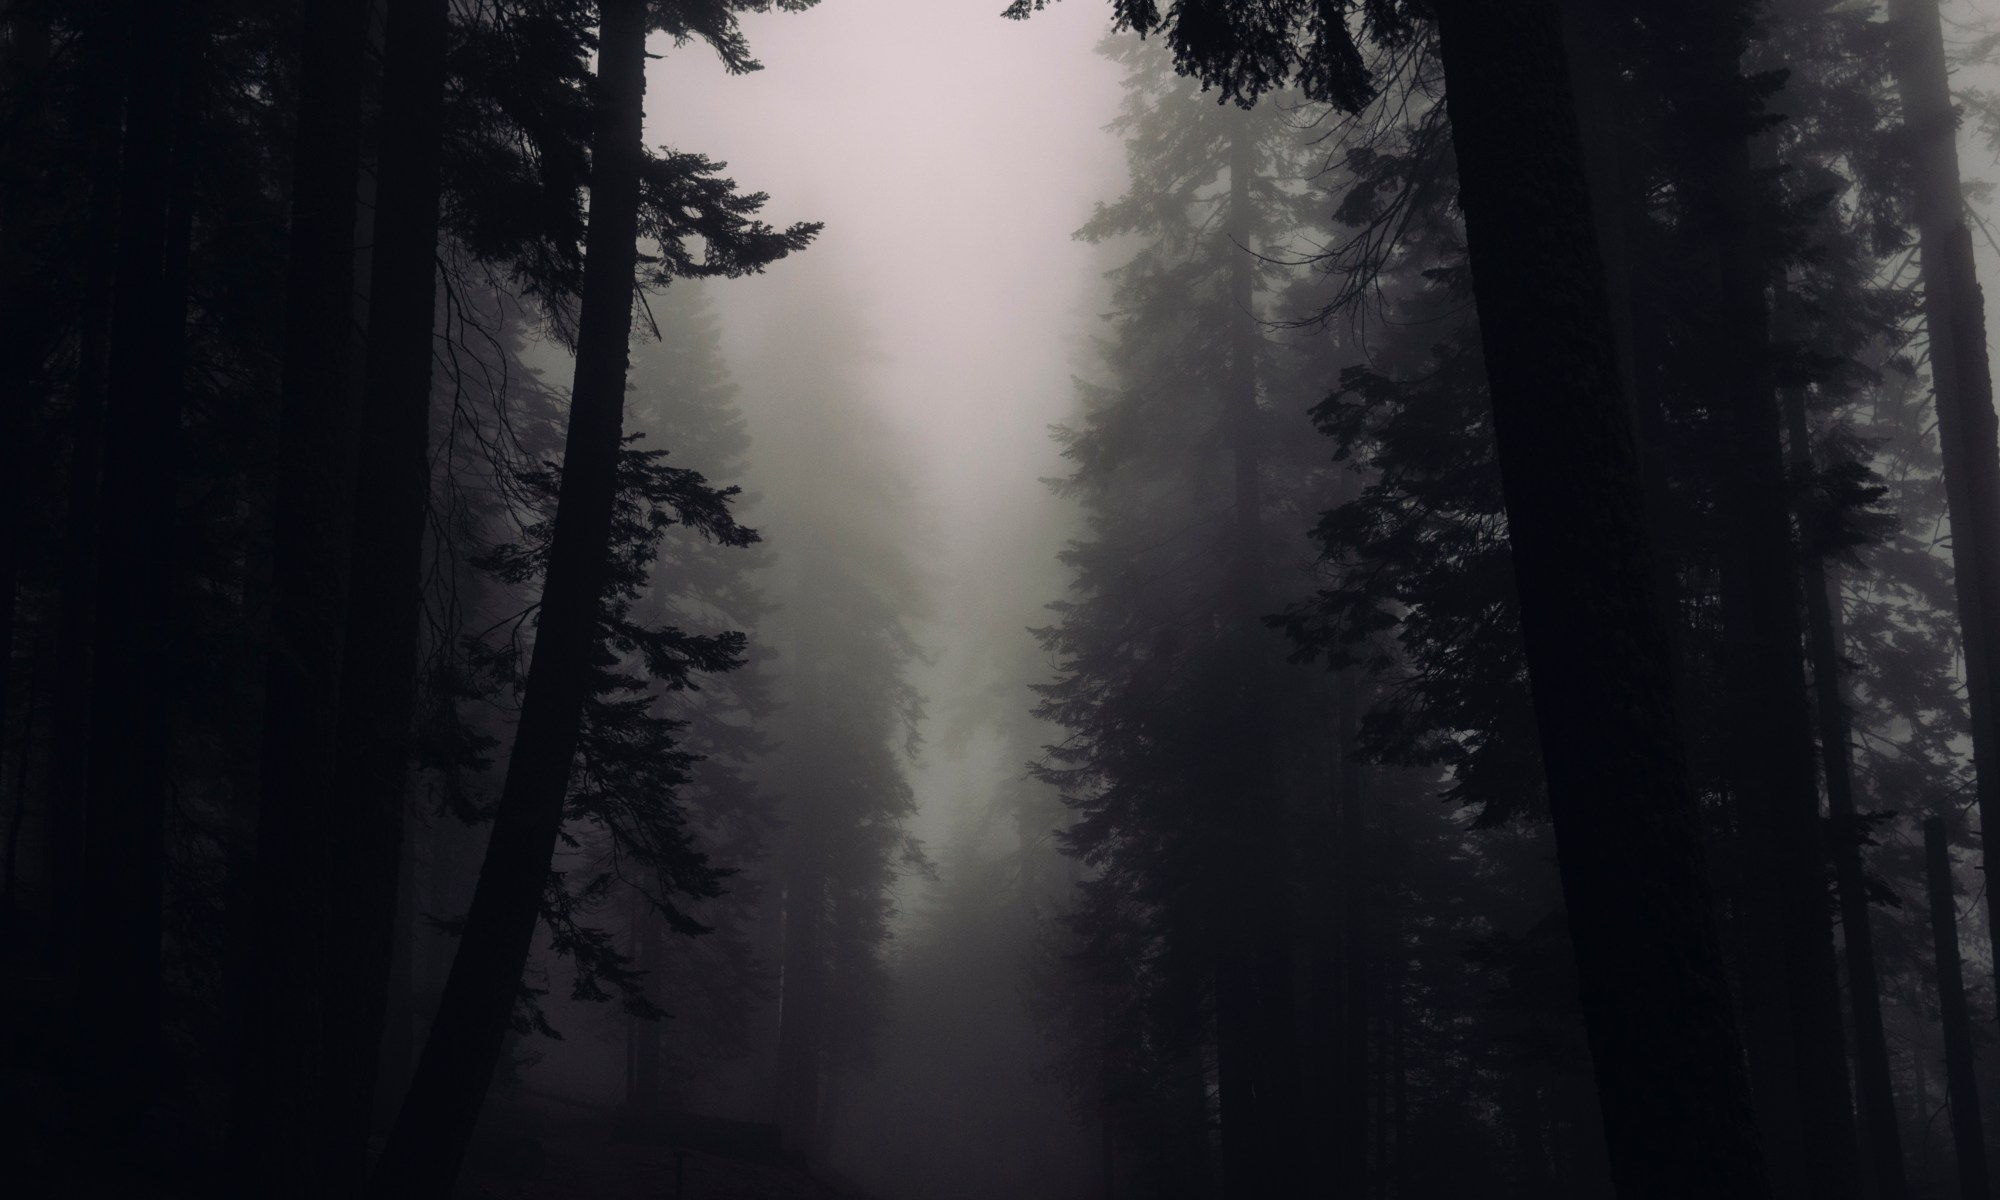 dark misty woods - image from https://stocksnap.io/photo/H6UXS40LRU